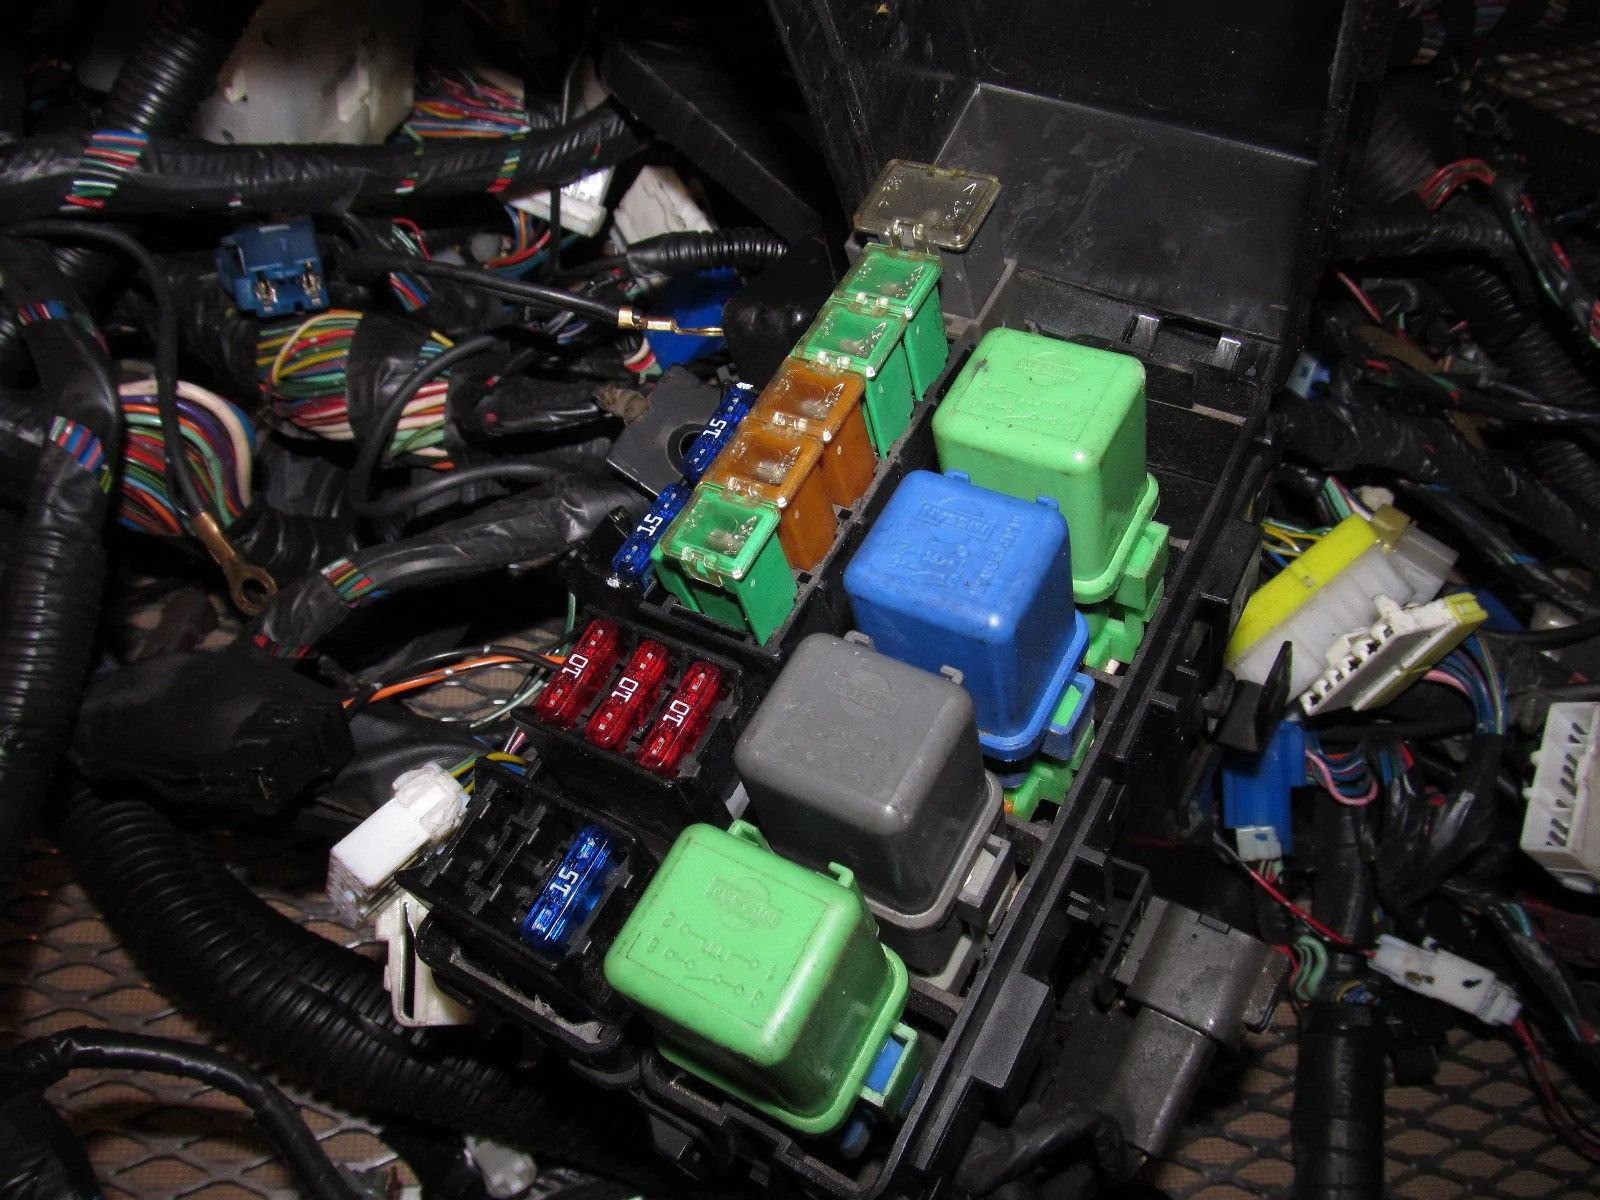 1991 Mustang Fuse Panel Diagram Troy Bilt Rzt 50 Wiring 240sx Battery Box Third Level Fox Body